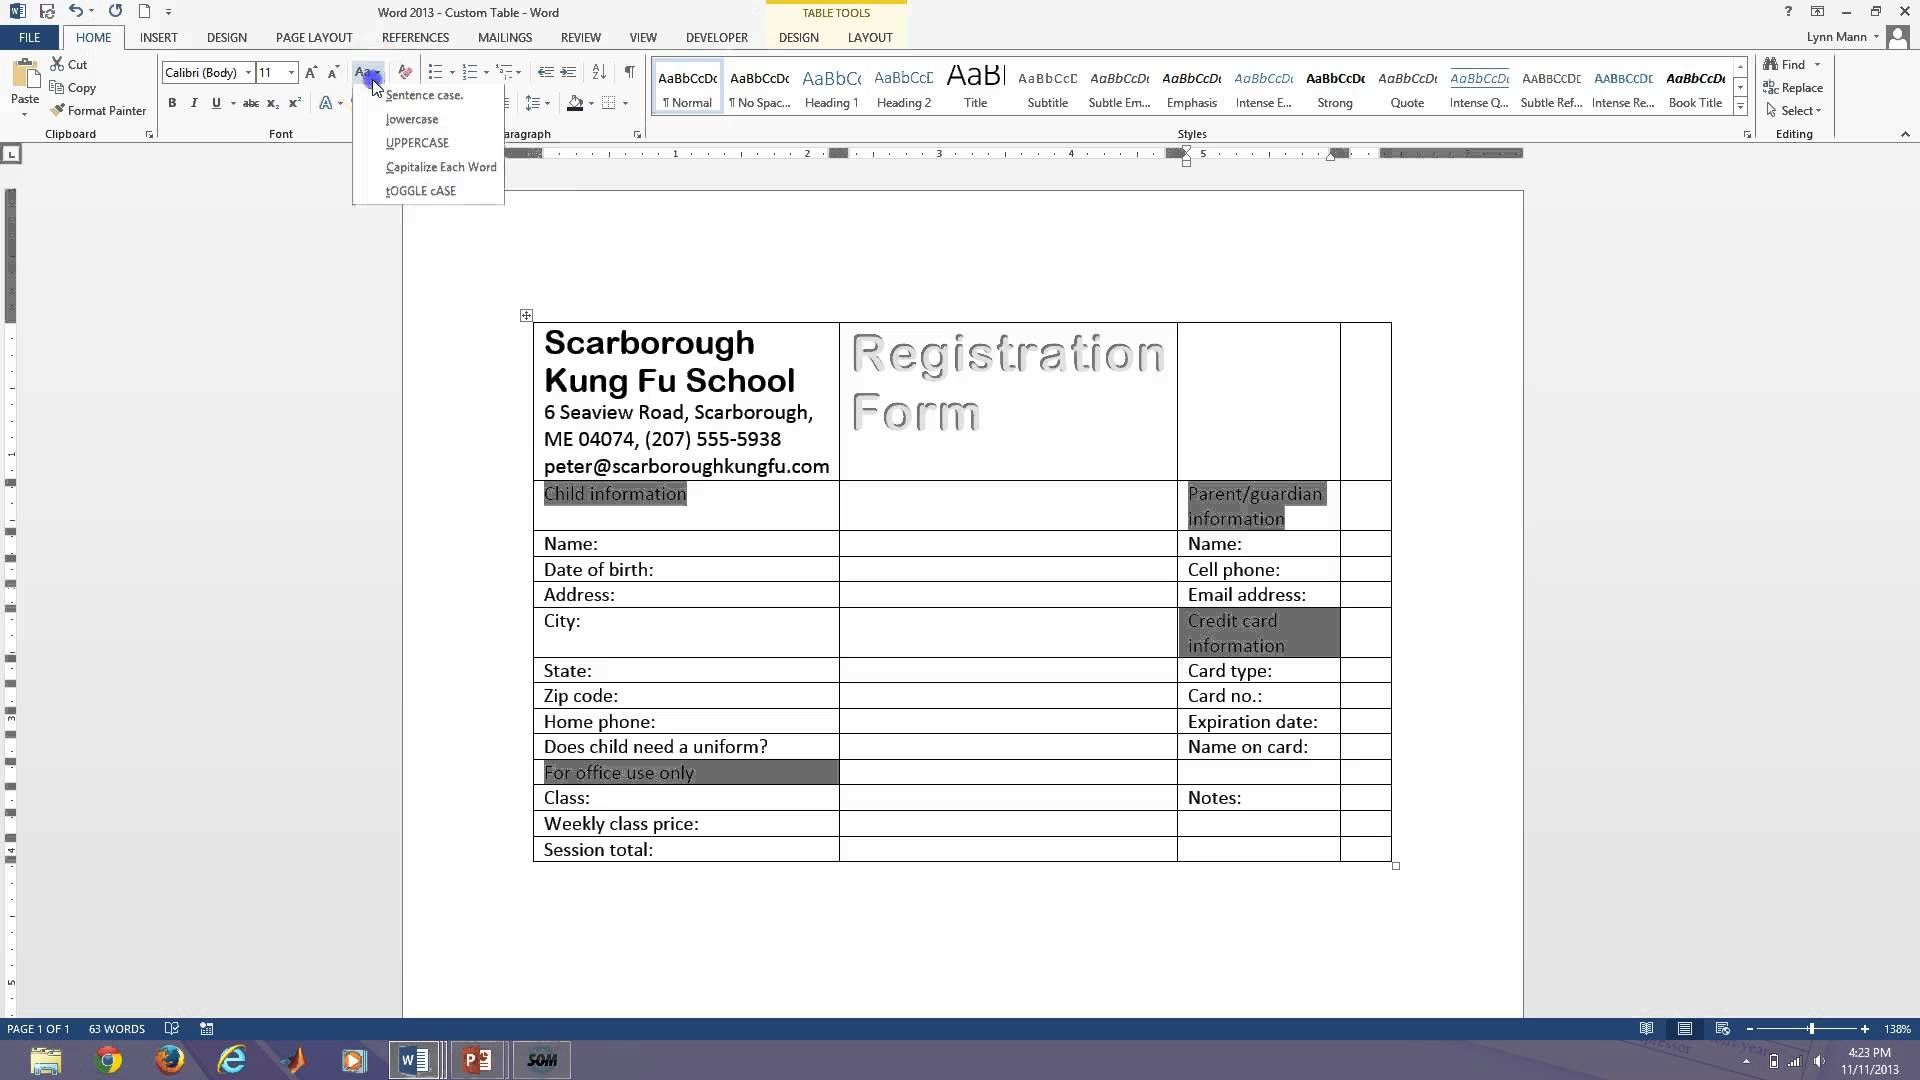 Word 2013 Fillable Forms Word template, Memo template